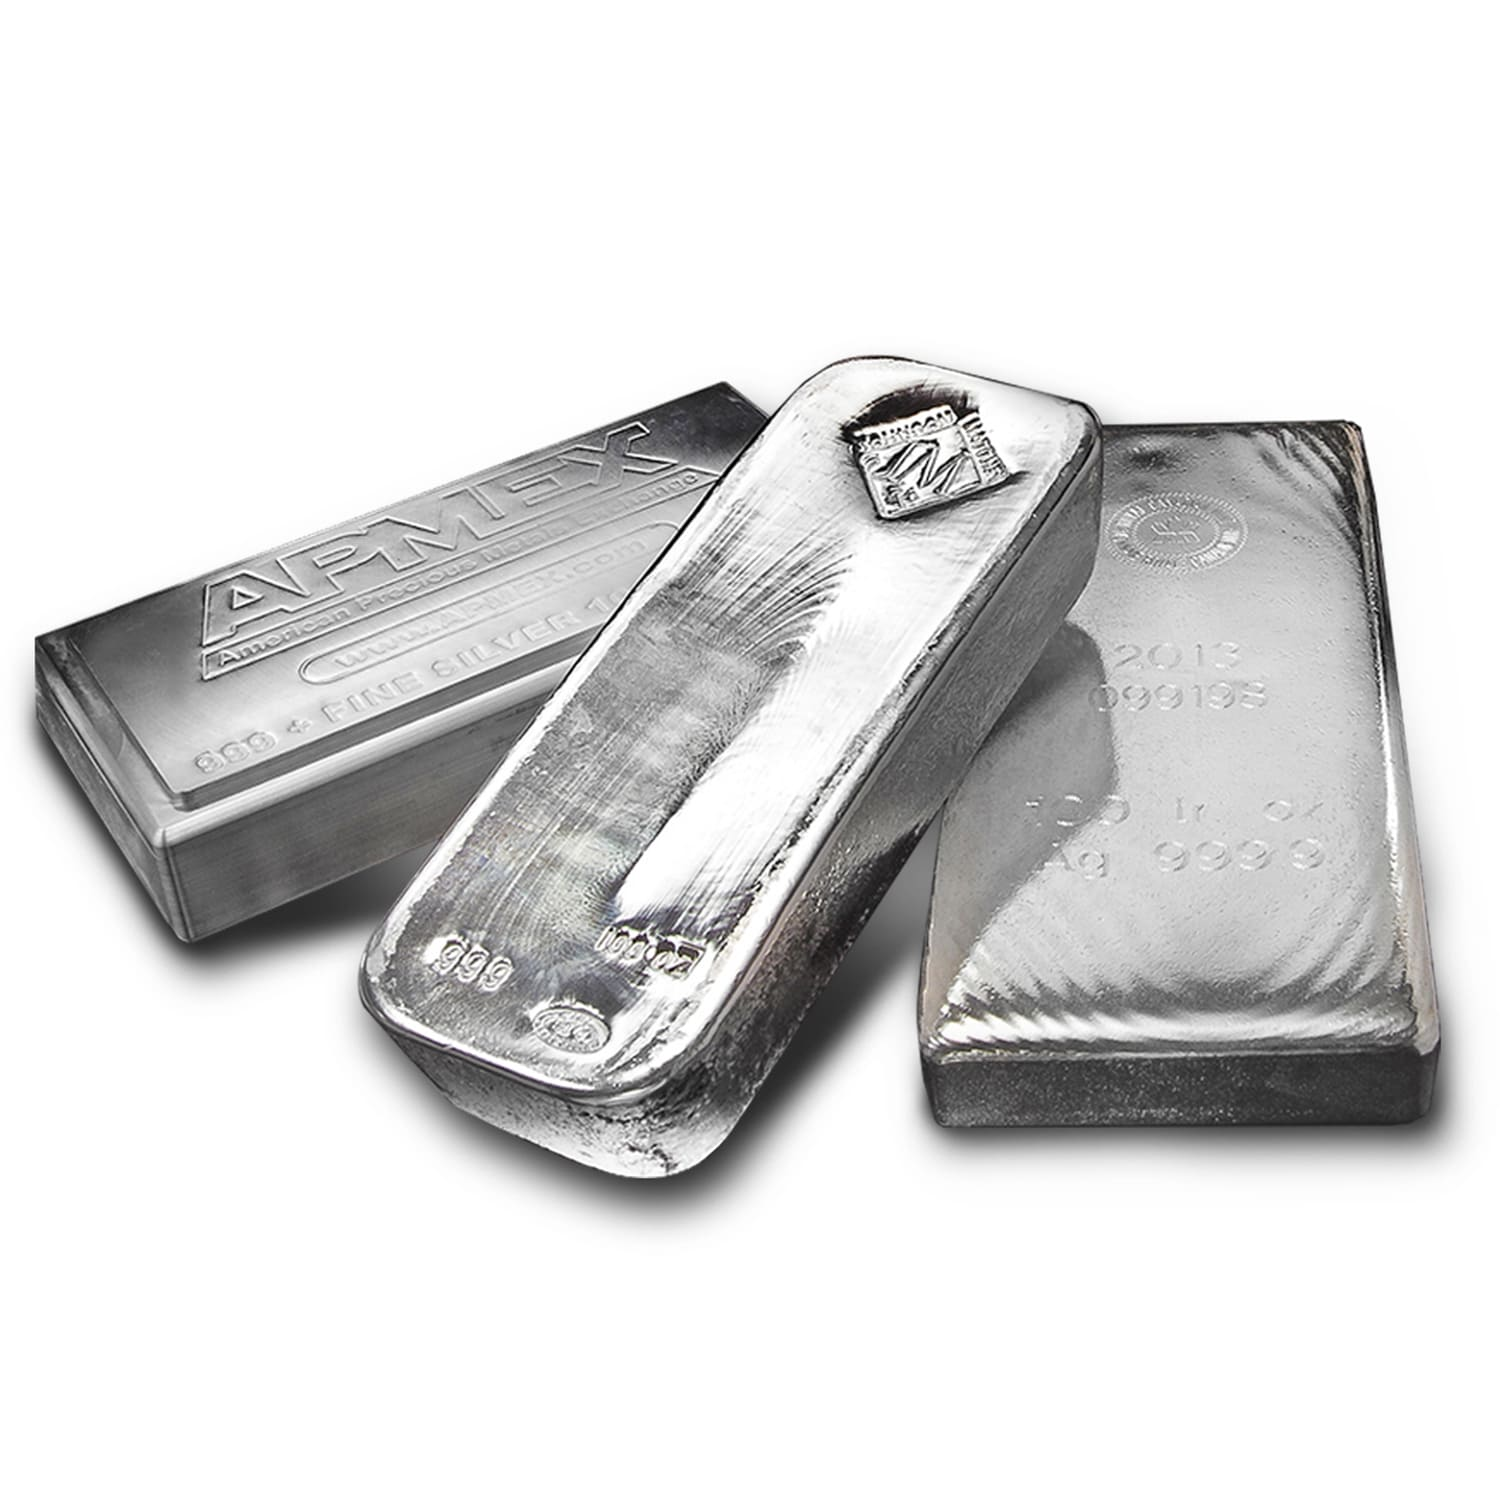 101.89 oz Silver Bar - Secondary Market